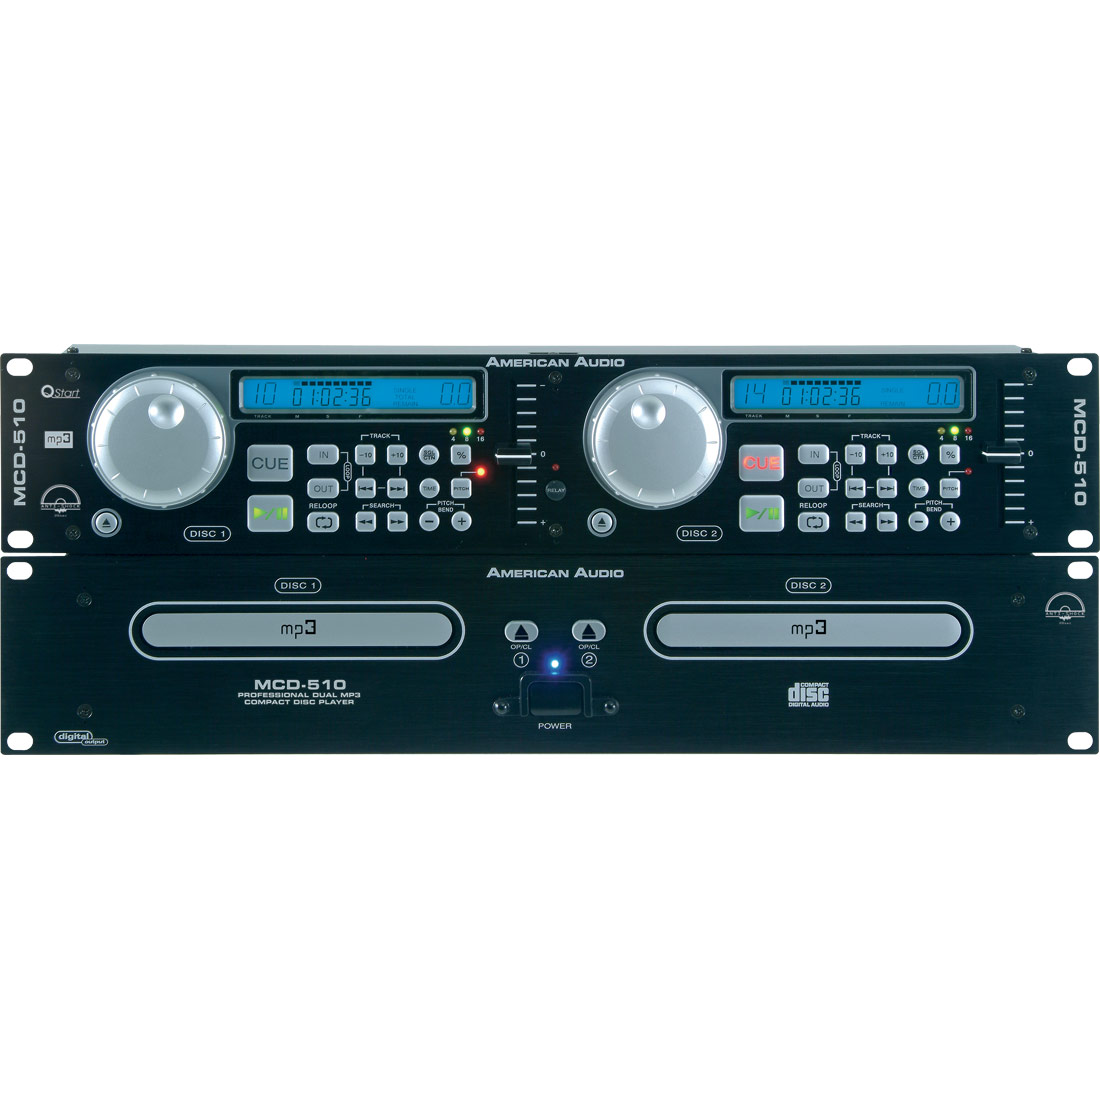 MCD 510 dual MP3 Disc player with 20sec